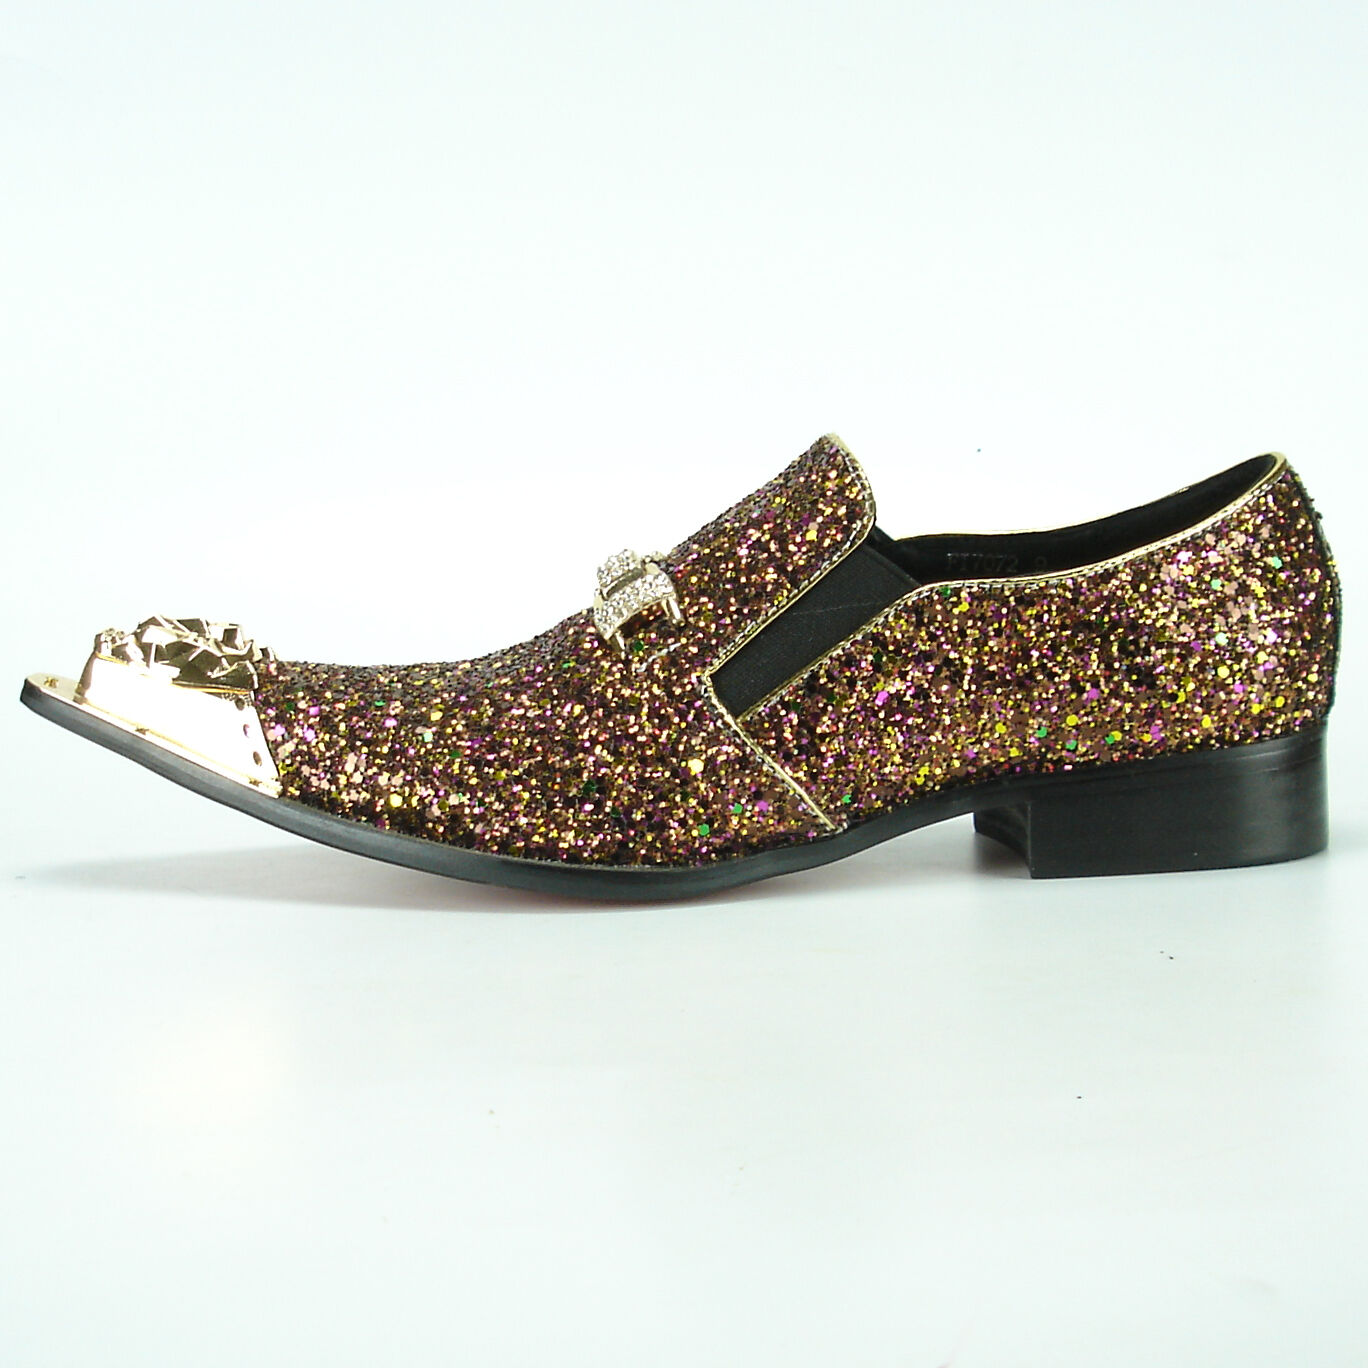 FI-7072 Rosa Glitter with Gold Gold Gold Ornament and Metal Tip Fiesso by Aurelio Garcia c5d1c0